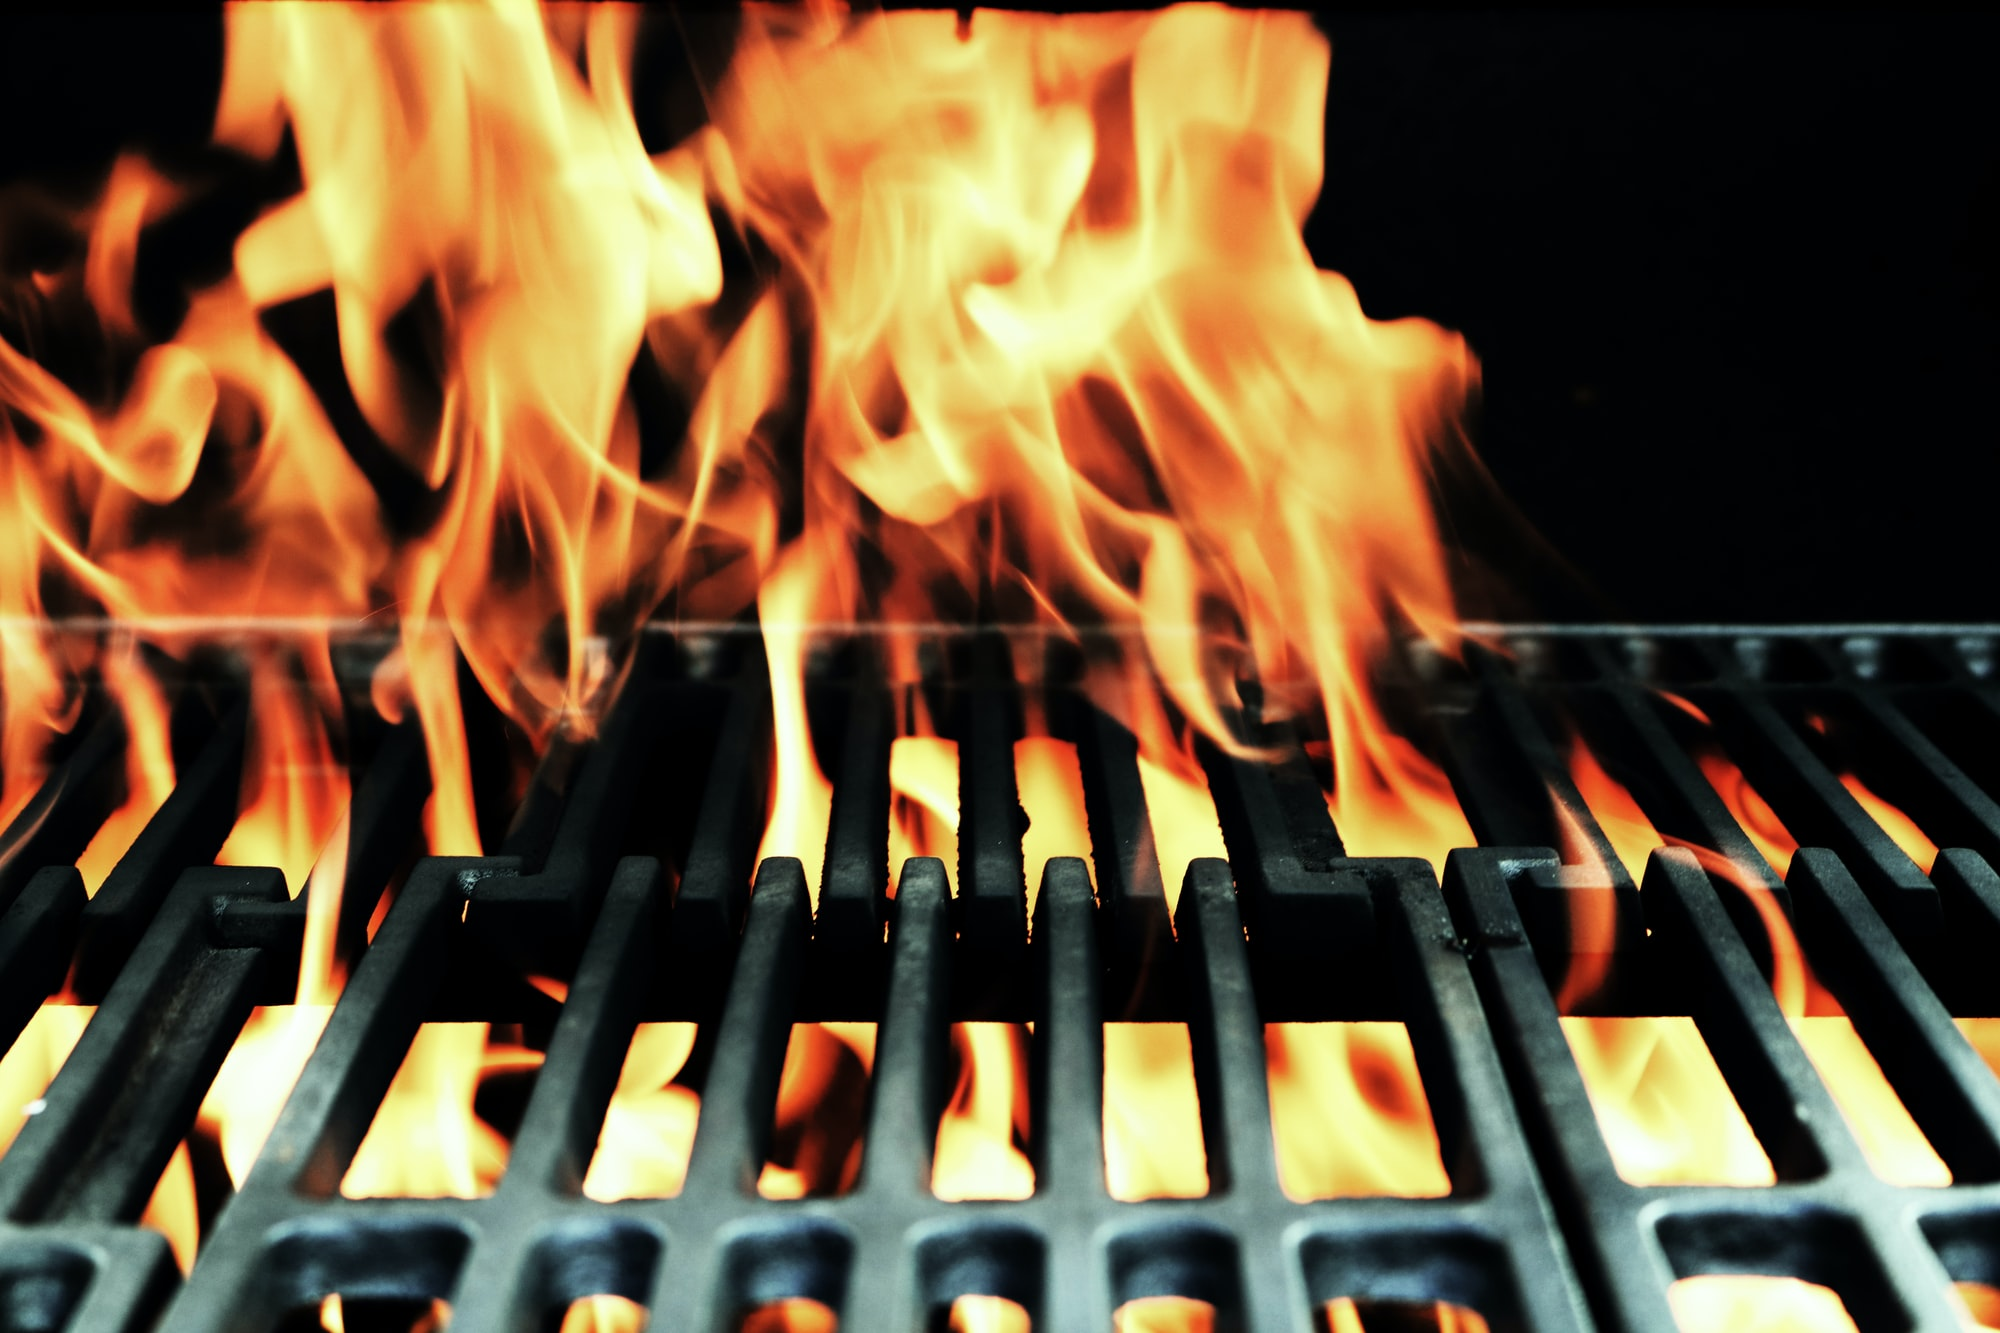 A fire in a grill.